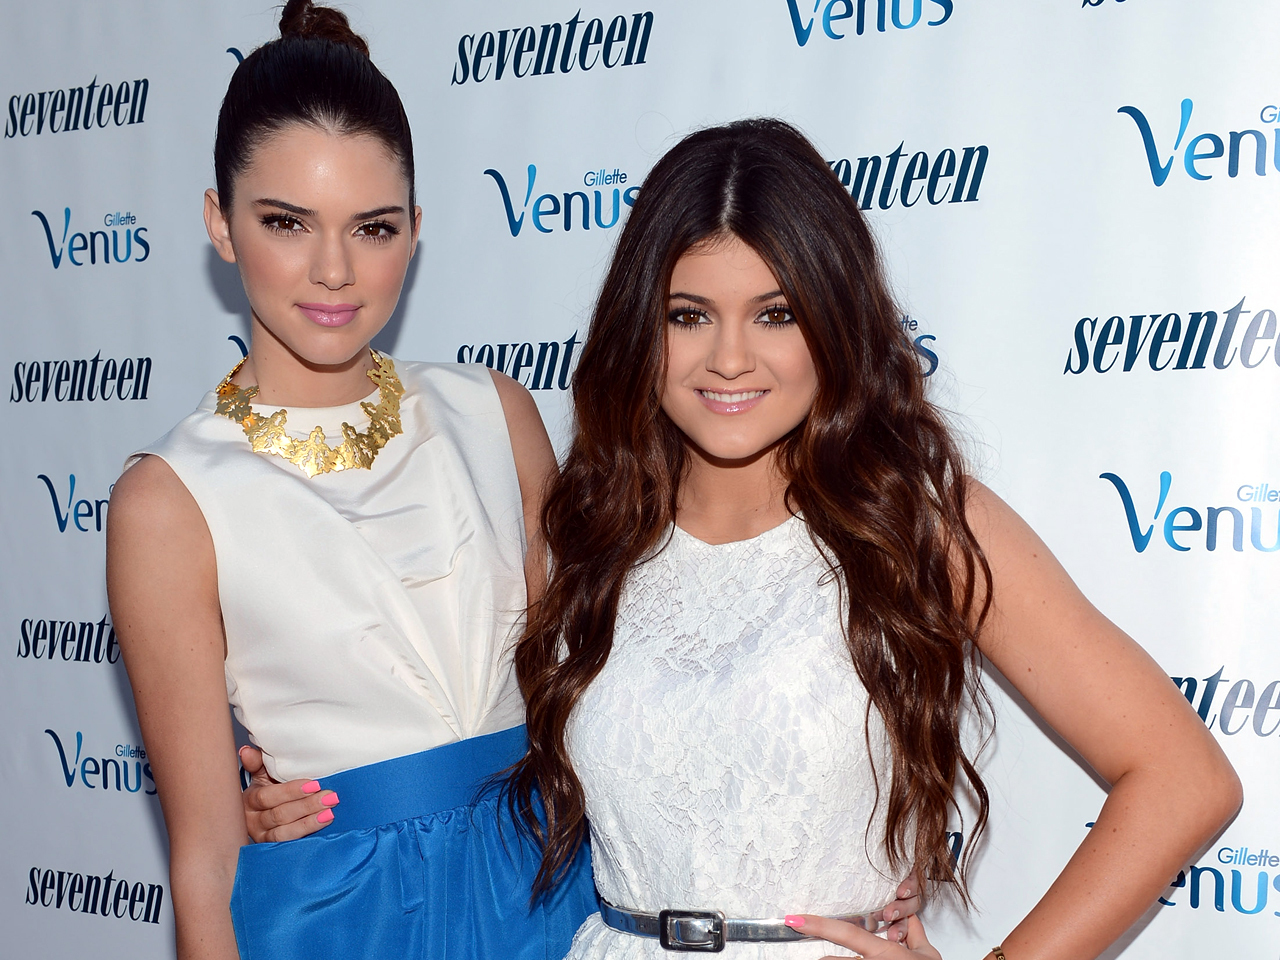 b1e9faca306c1 Kendall and Kylie Jenner to launch clothing line - CBS News